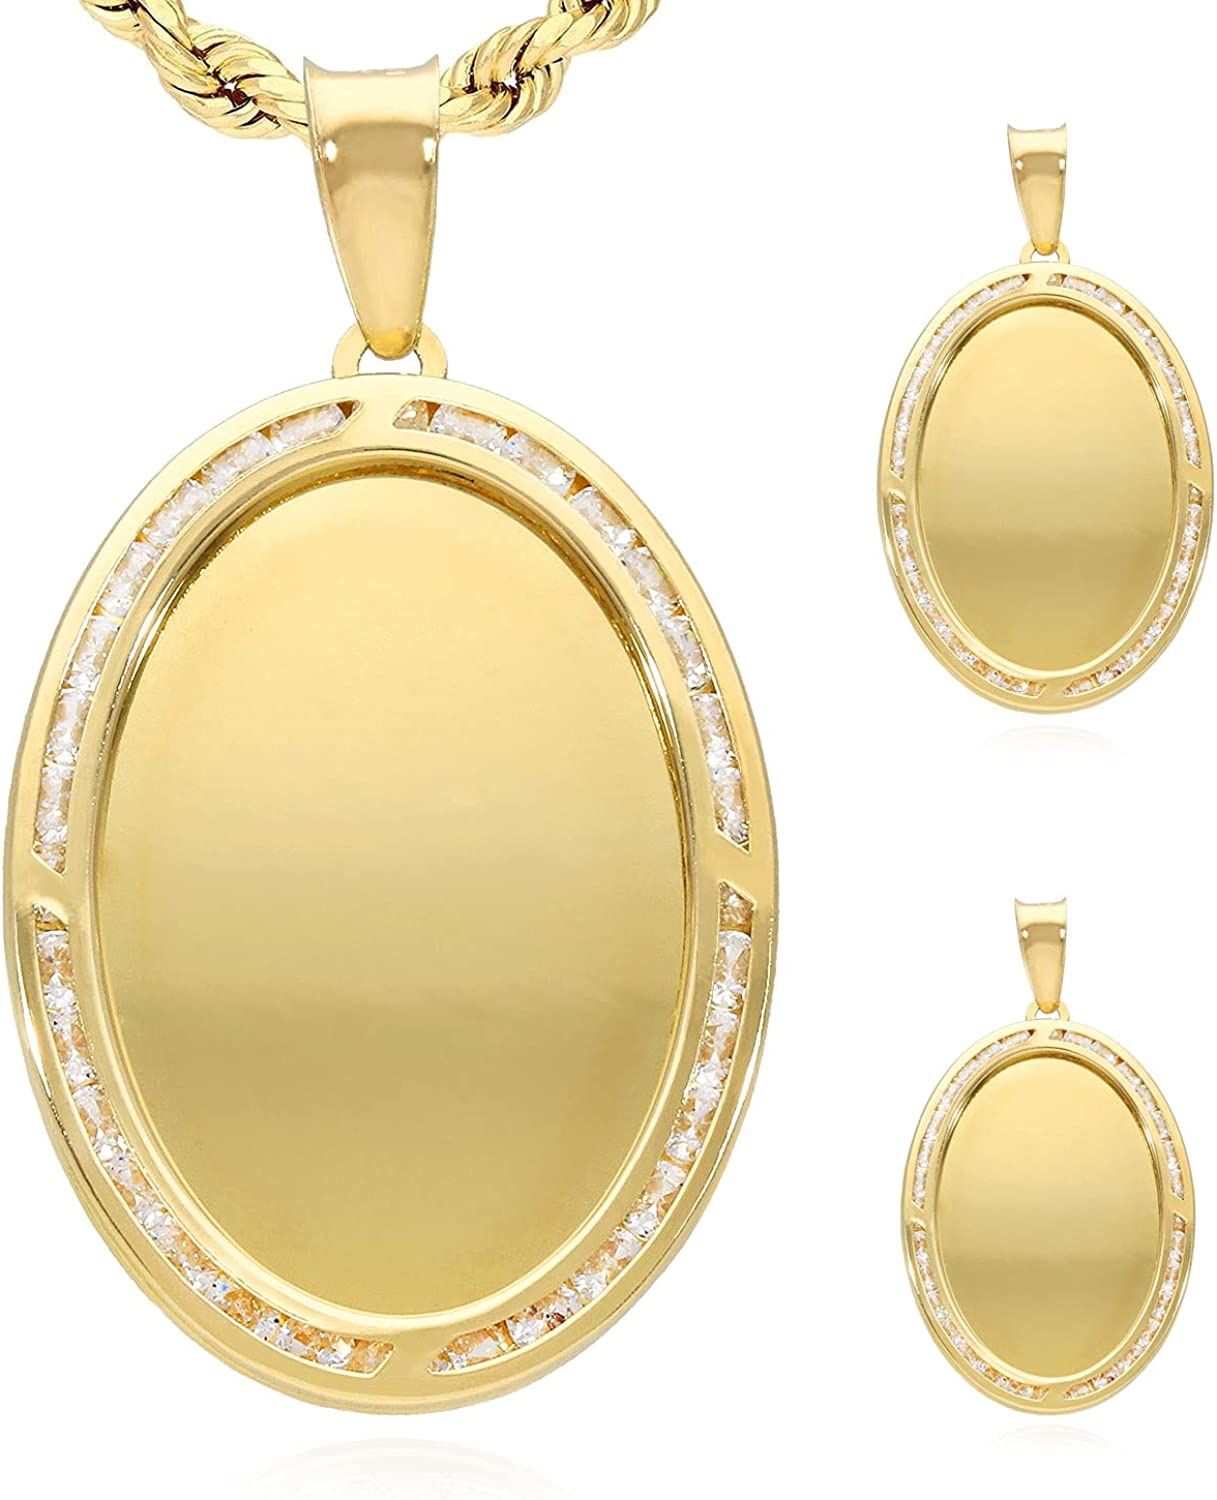 10K Yellow Gold Created Diamond Oval Memory Picture Medallion Pendant 1.2